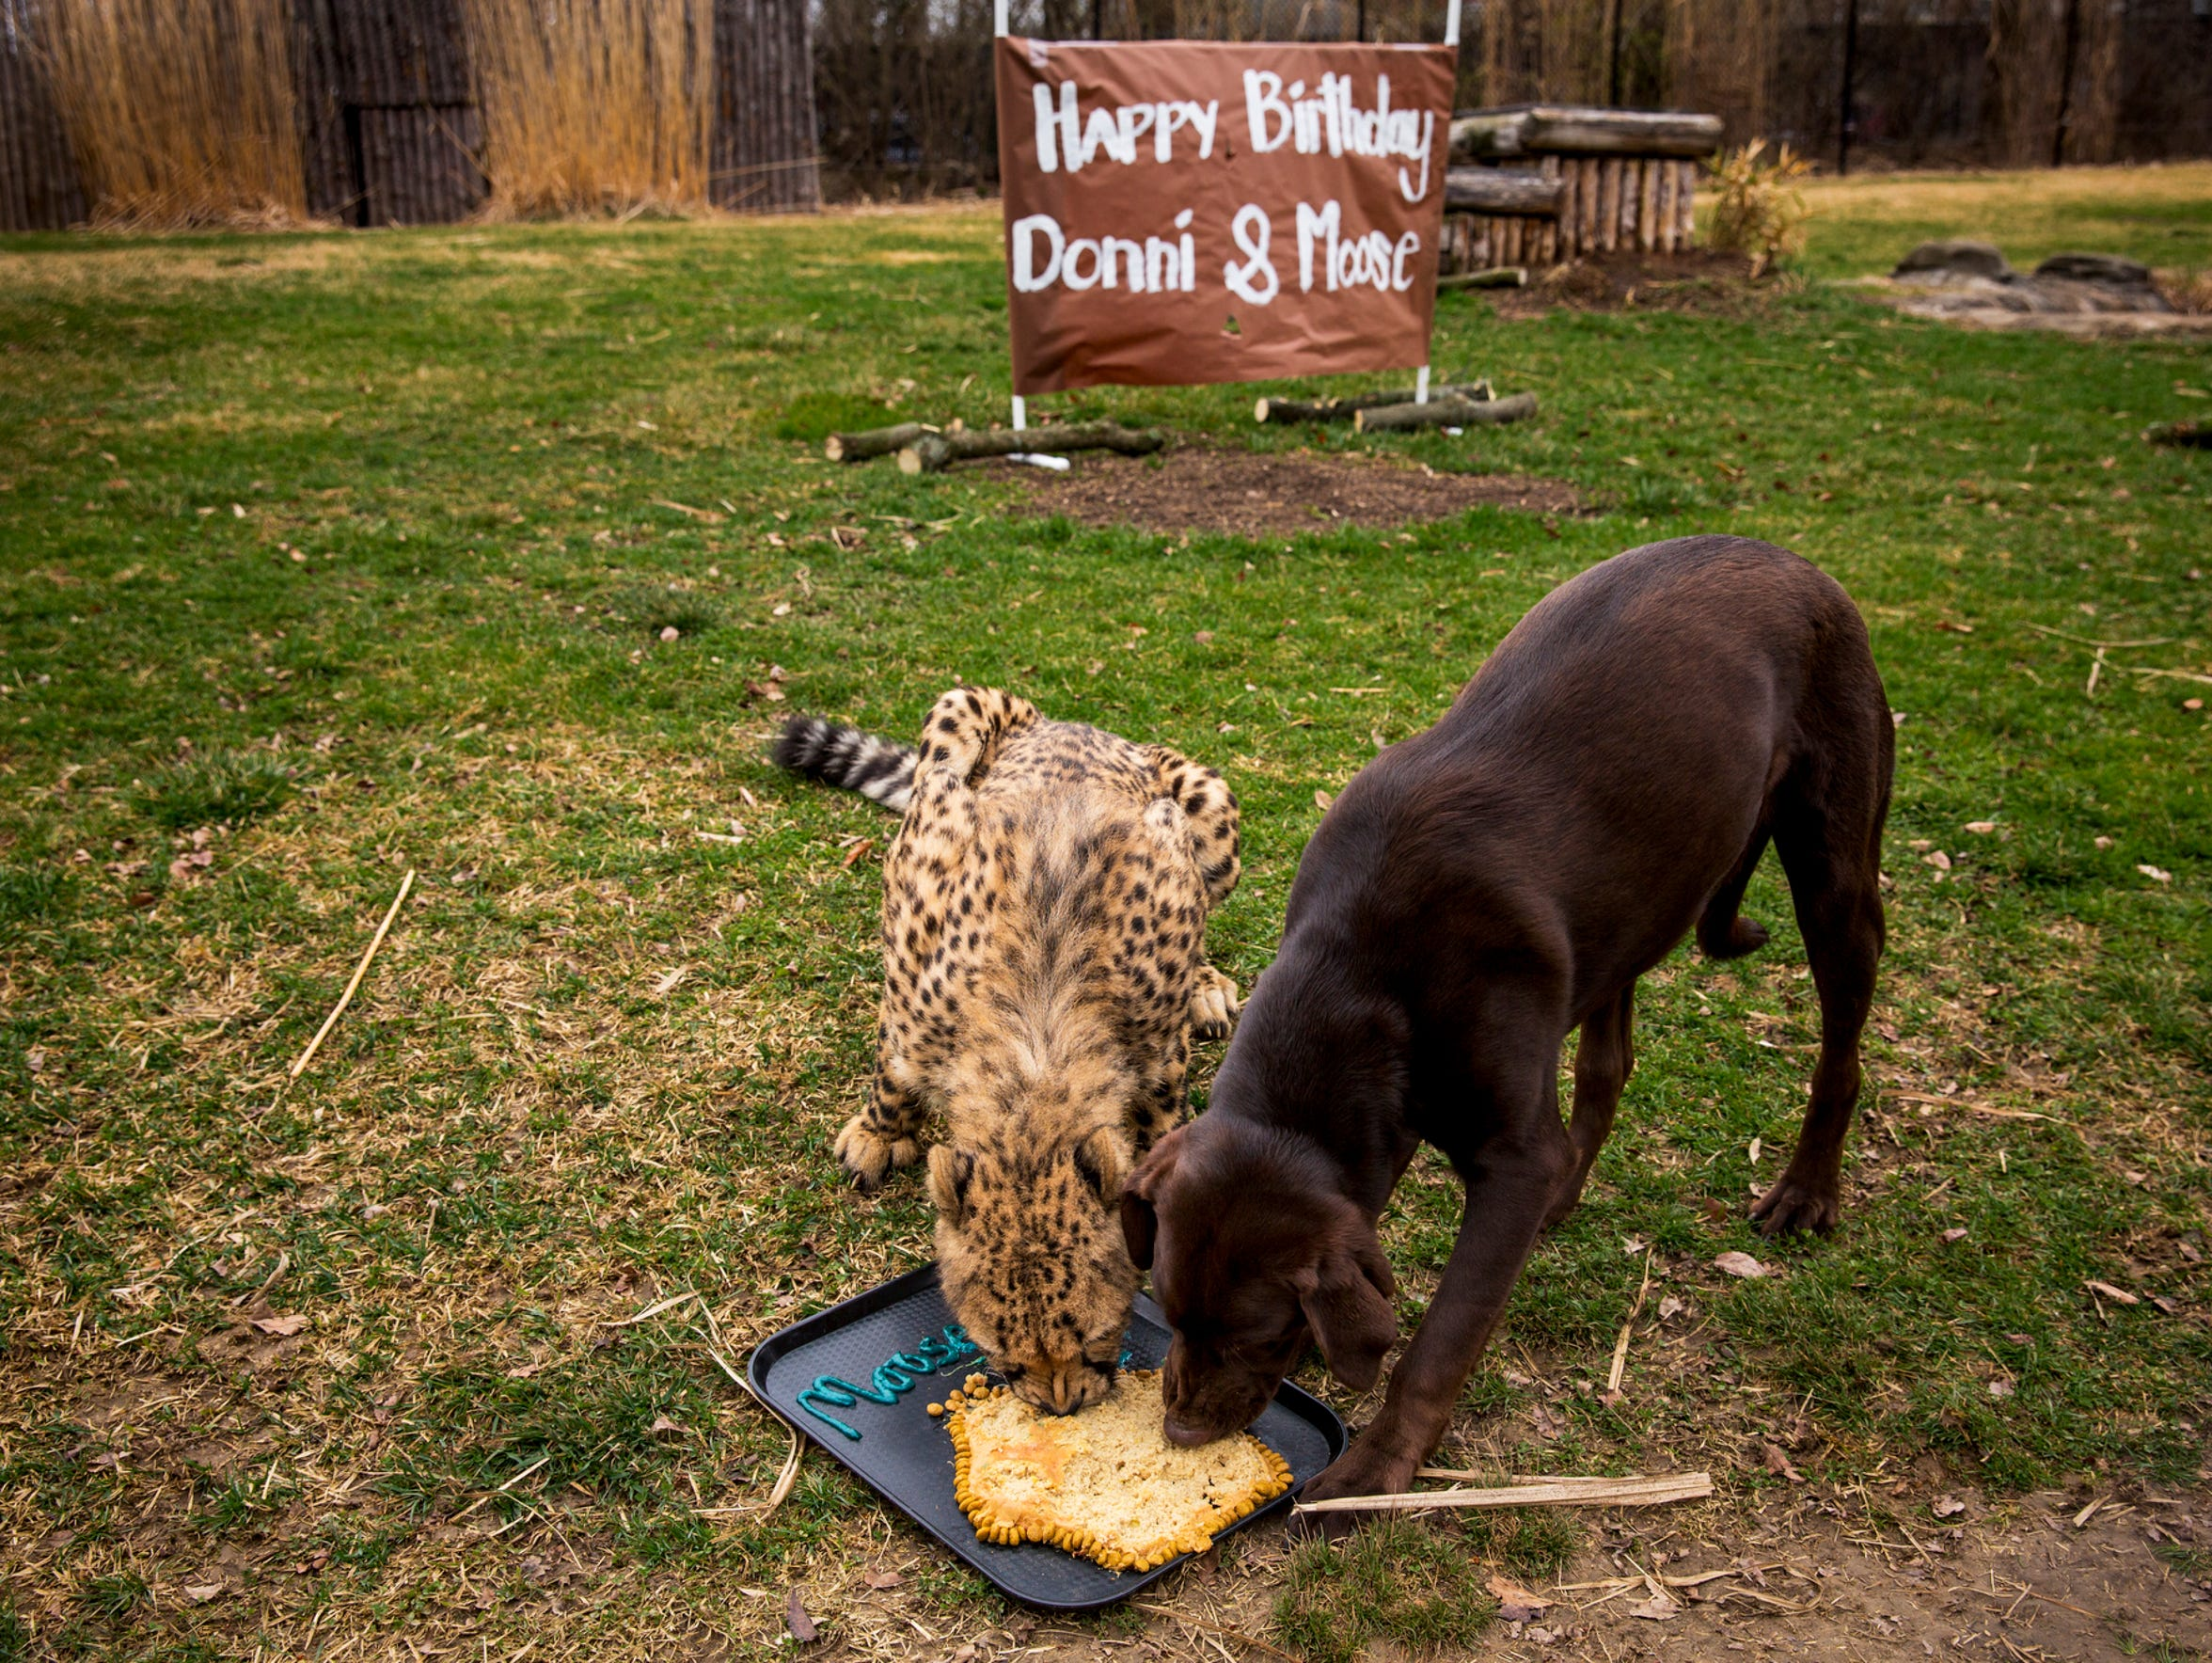 Donni eats Moose's birthday cake during their shared